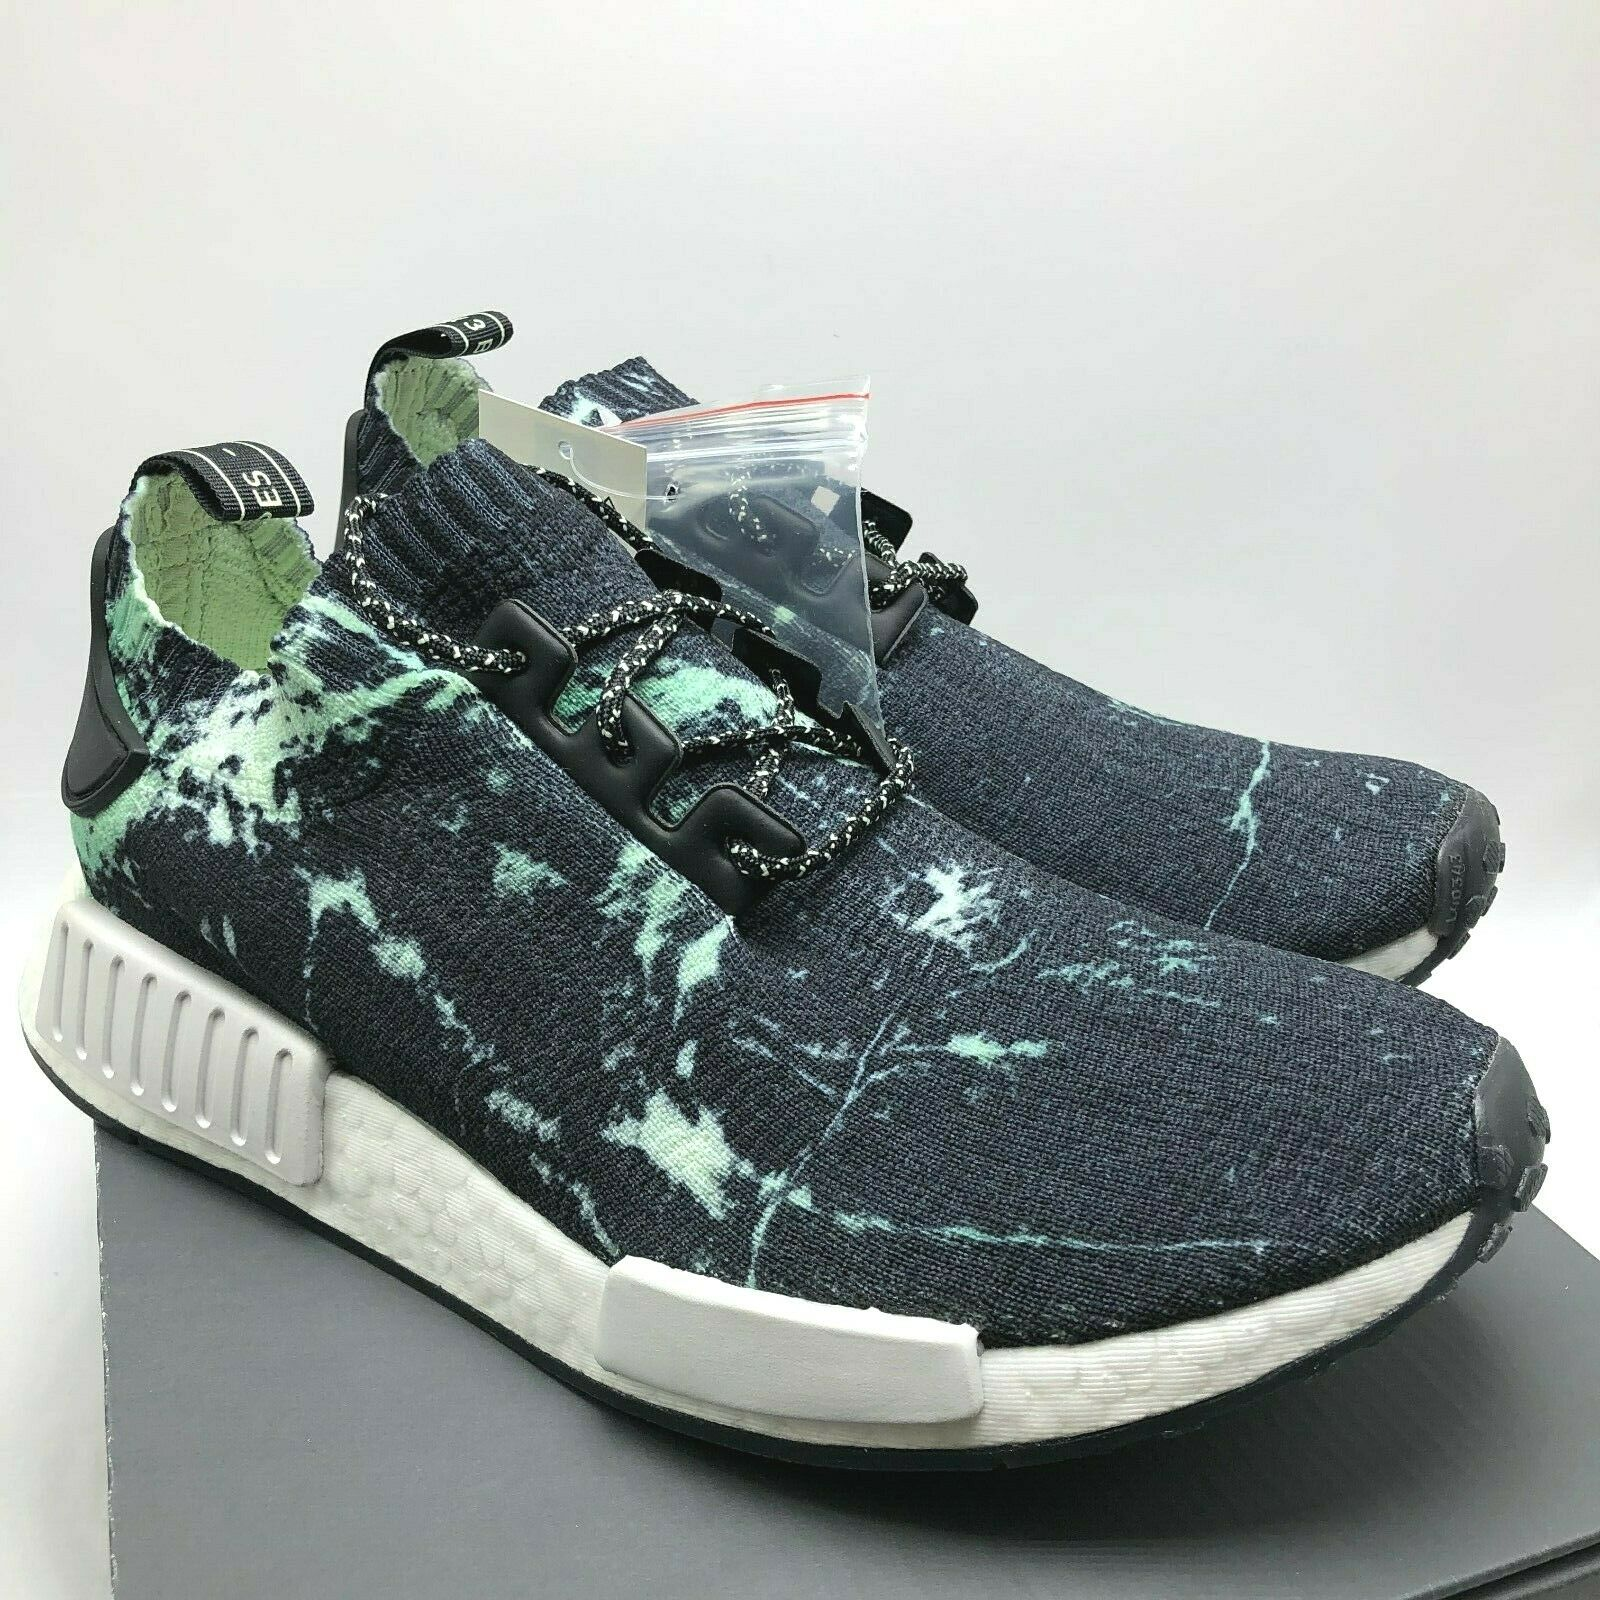 adidas NMD R1 PK Size 8 Mens Marble